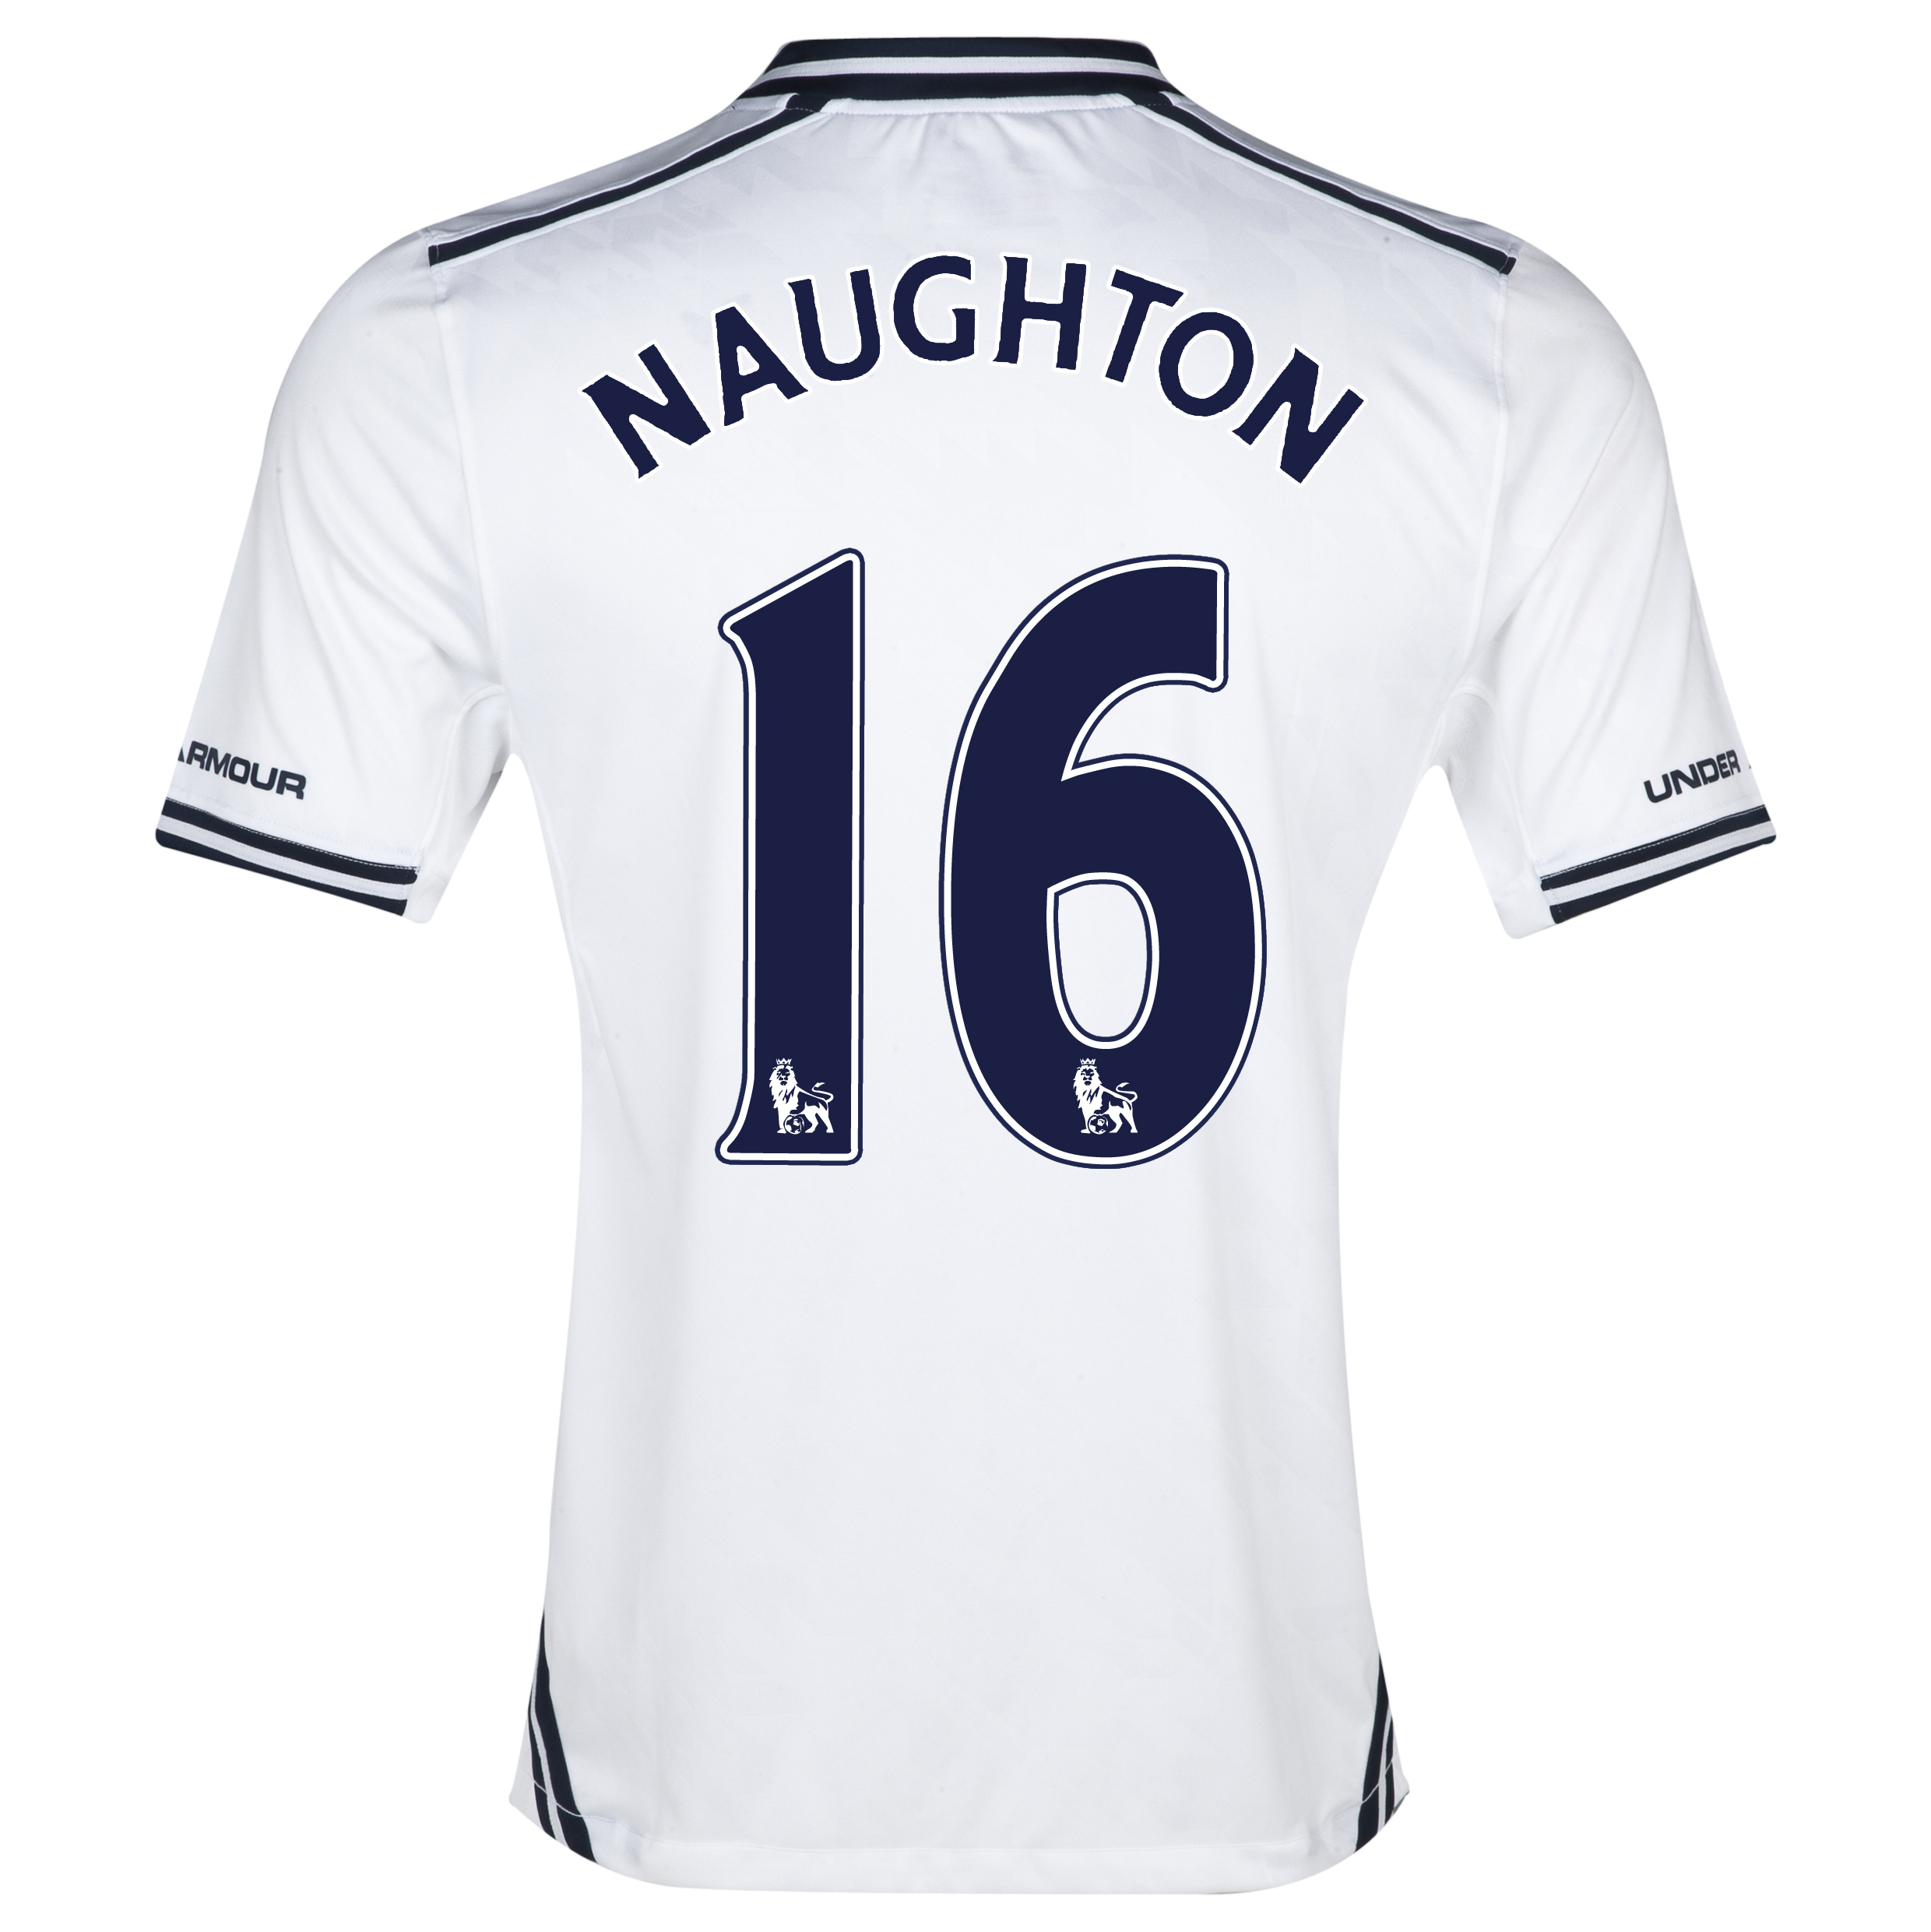 Tottenham Hotspur Home Shirt 2013/14 with Naughton 16 printing